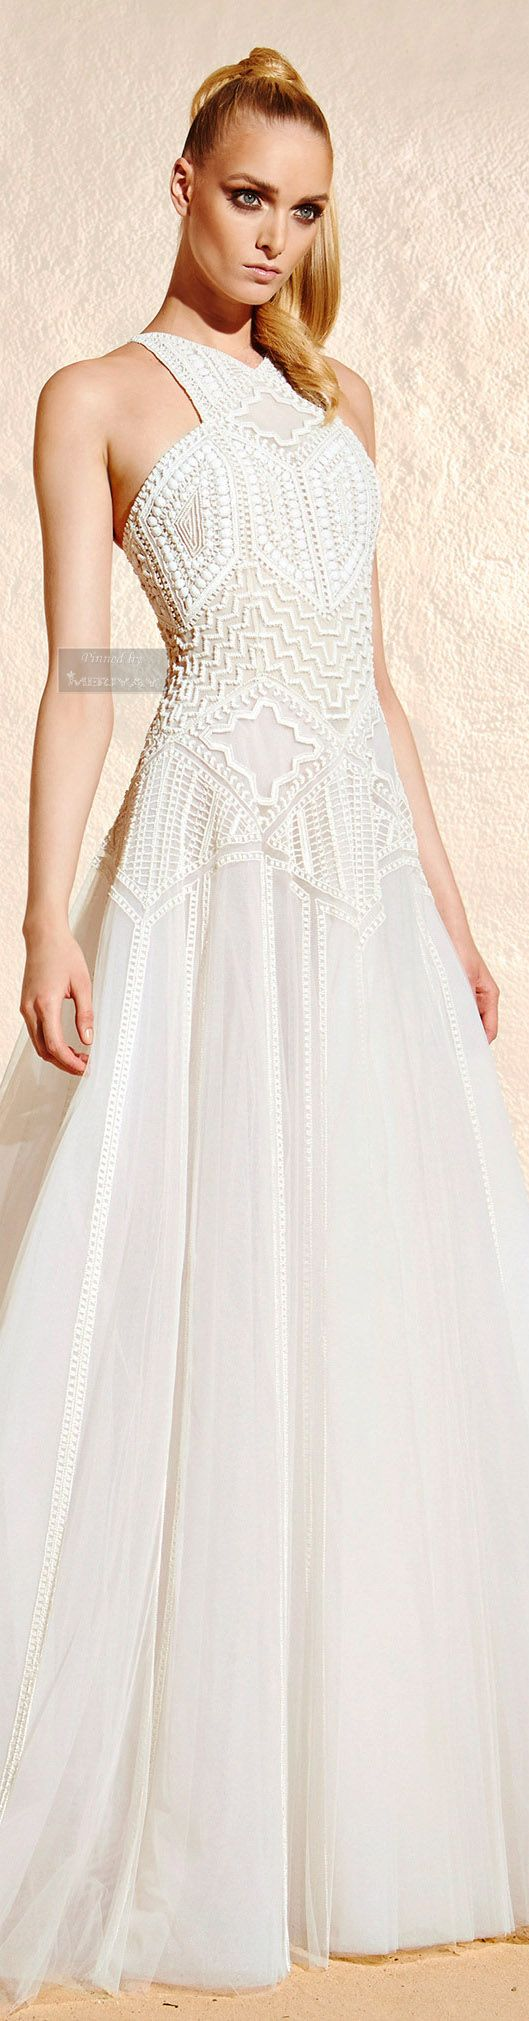 RESORT 2015 Zuhair Murad.  http://es.pinterest.com/meriyay/resort-2015/